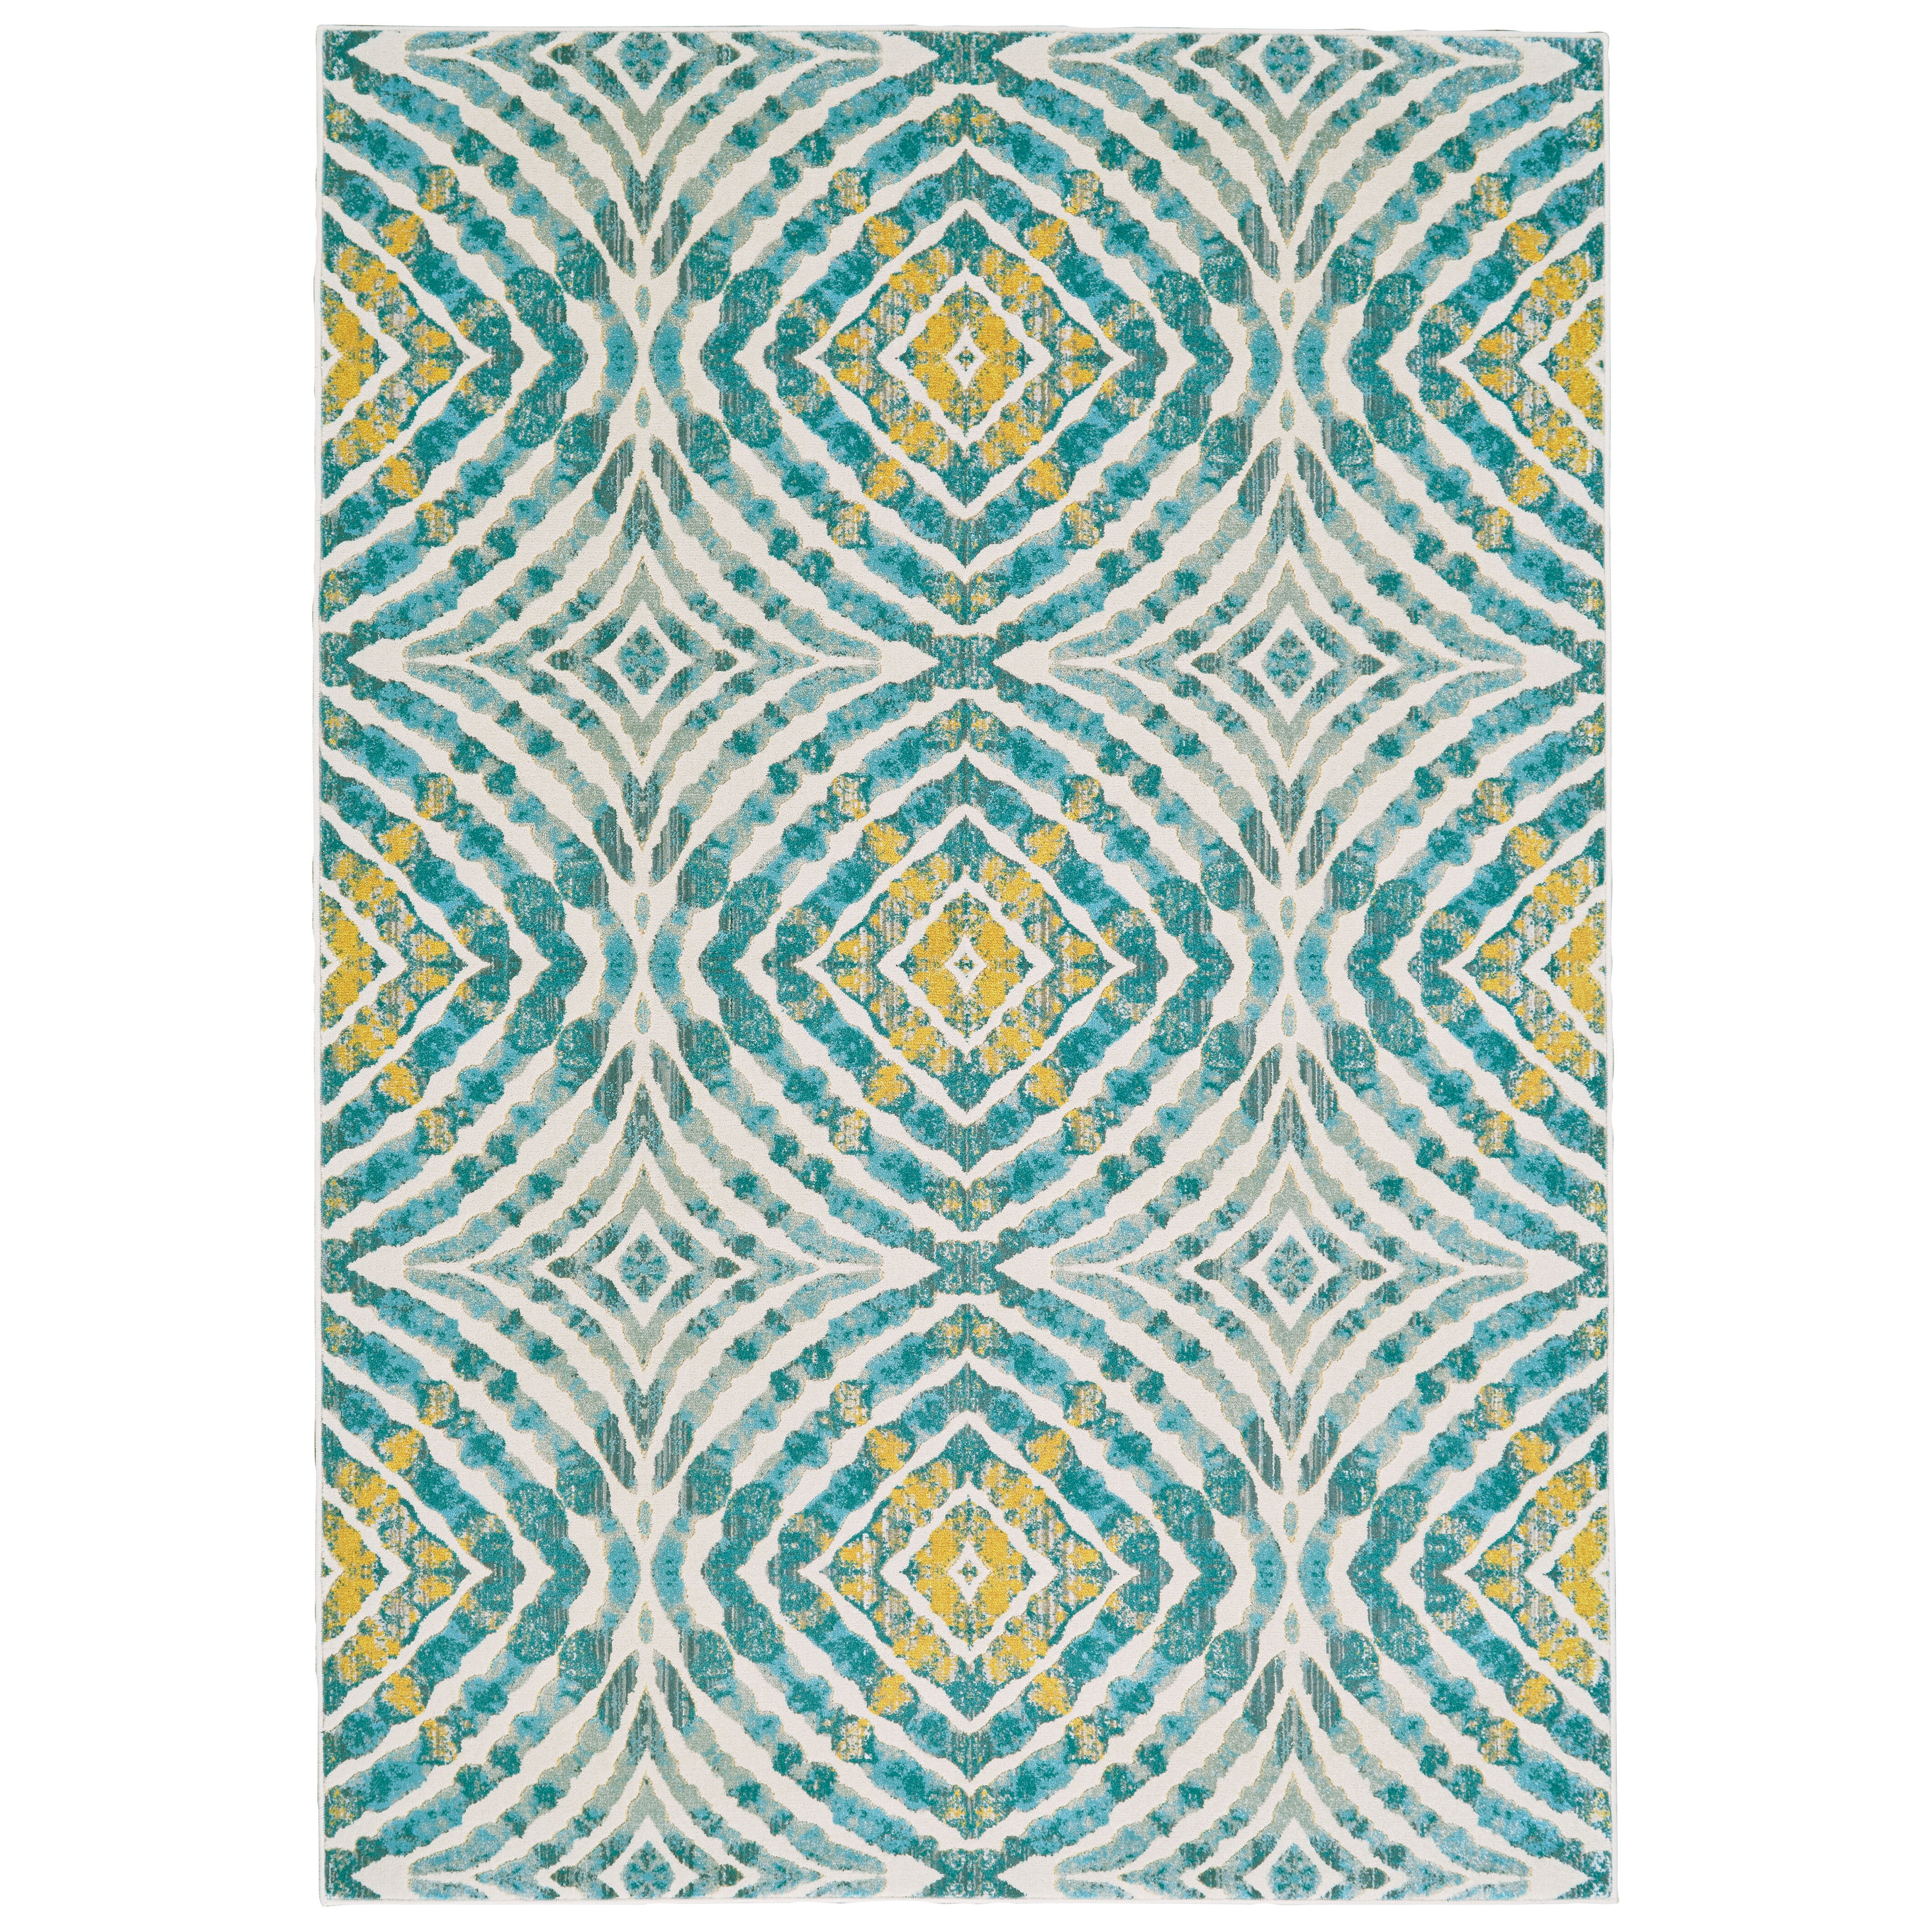 Teal Area Rug: Varick Gallery Sutton Place Teal Area Rug & Reviews